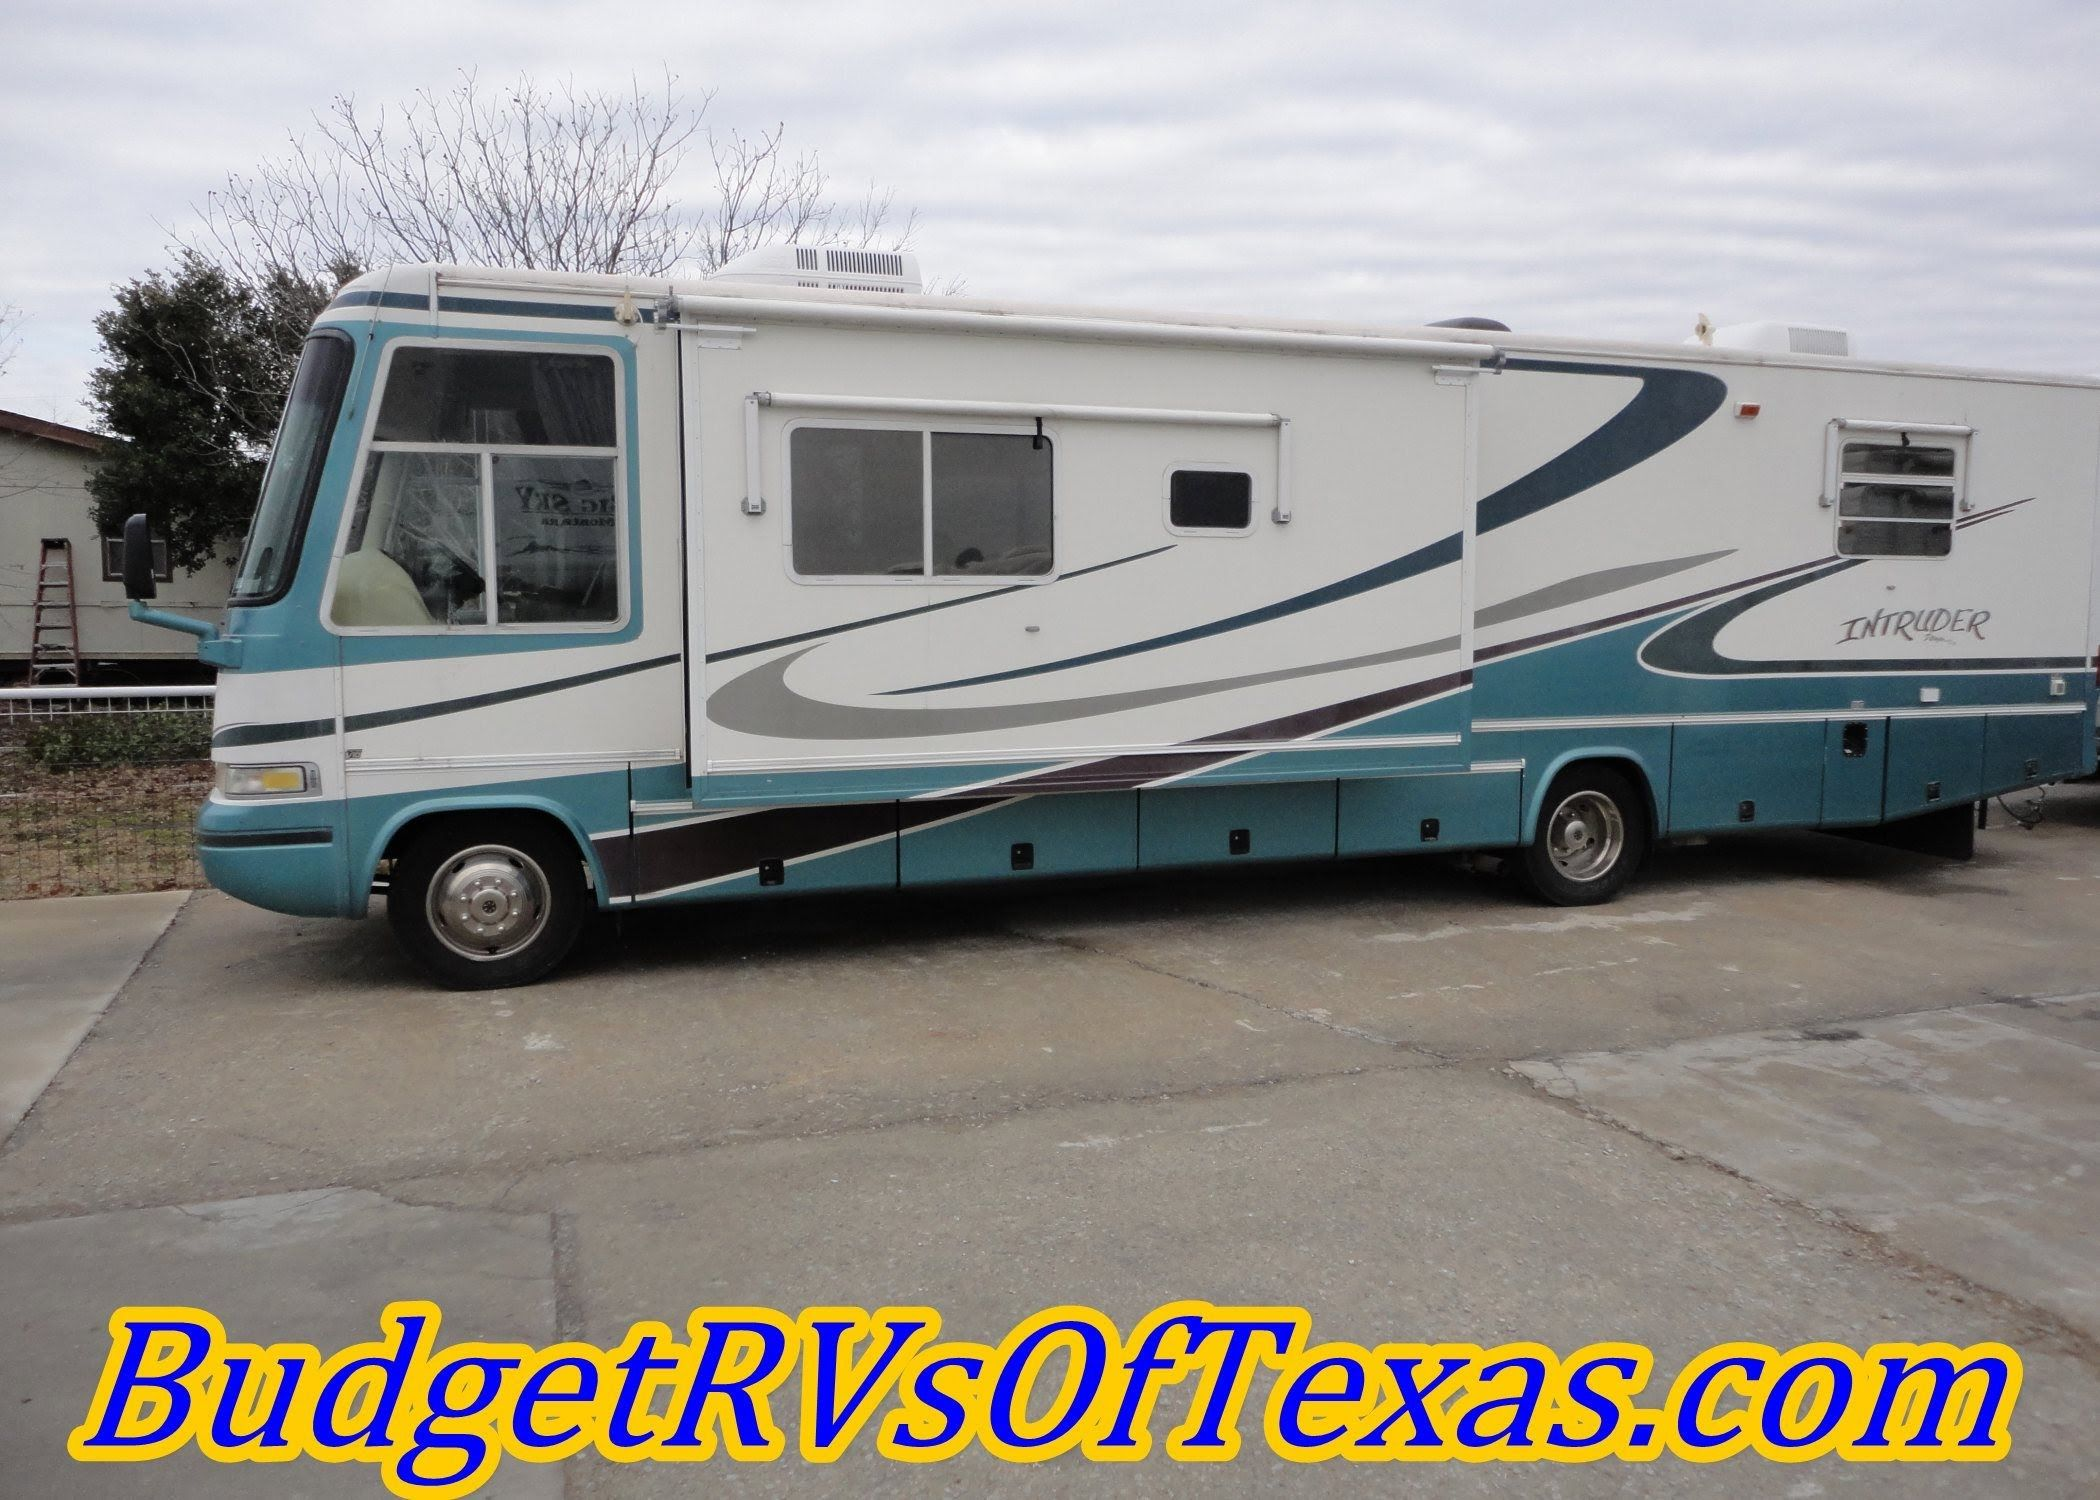 Budget Friendly Reconditioned 35ft 2001 Class A  Intruder by Damon Sleeps 4 This great budget friendly class A motor home is just perfect for your long road trips! With sleeping for up to 4 the whole family will enjoy all the fun too! See more at BudgetRVsOfTexas.com